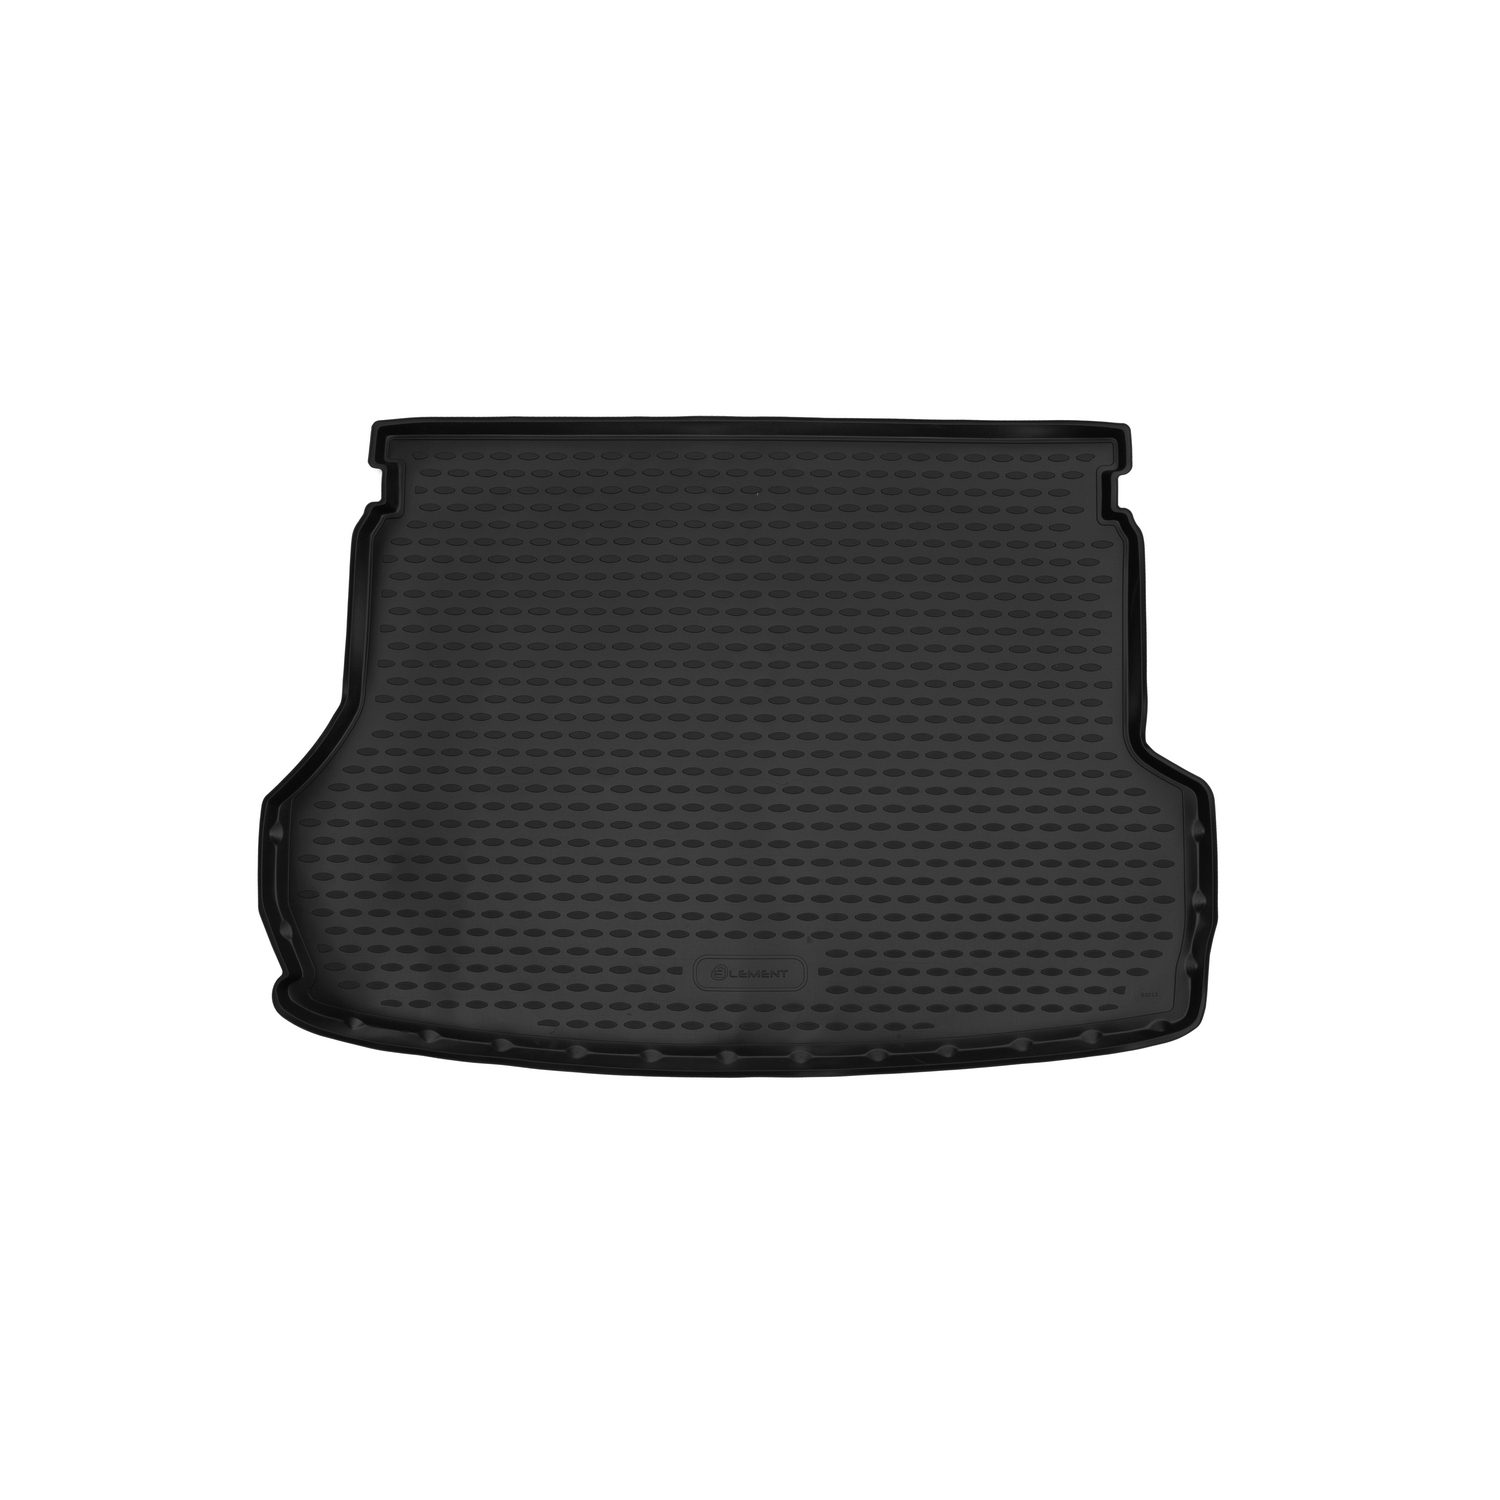 Trunk Mat For Fit For SUBARU Forester 2018-, Cross, 1 PCs ELEMENT020121